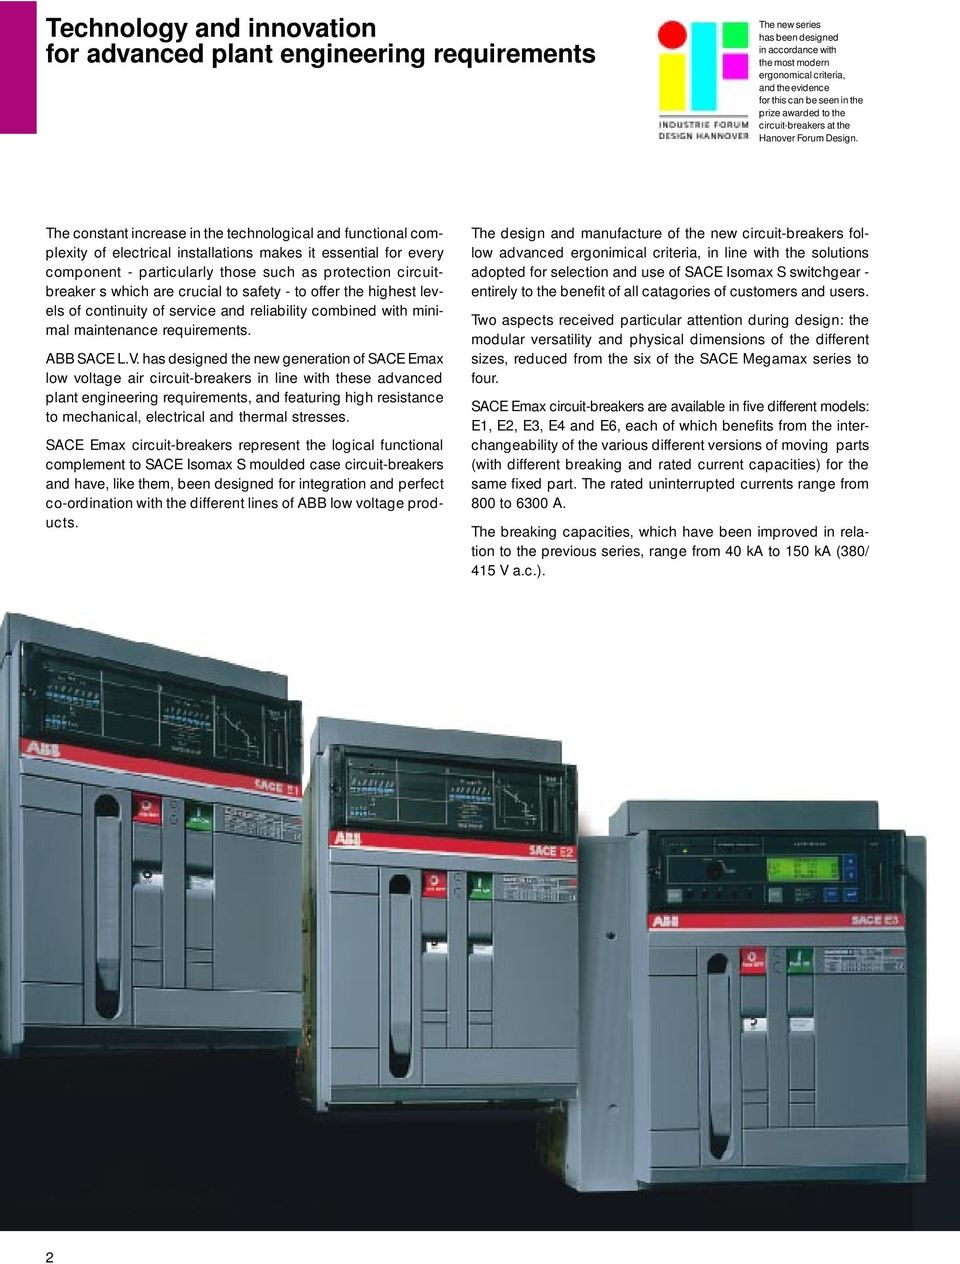 Technical Catalogue Low Voltage Air Circuit Breakers Sace Emax Breaker Installation Essentials Know Which Type Of The Constant Increase In Technological And Functional Complexity Electrical Installations Makes It Essential For